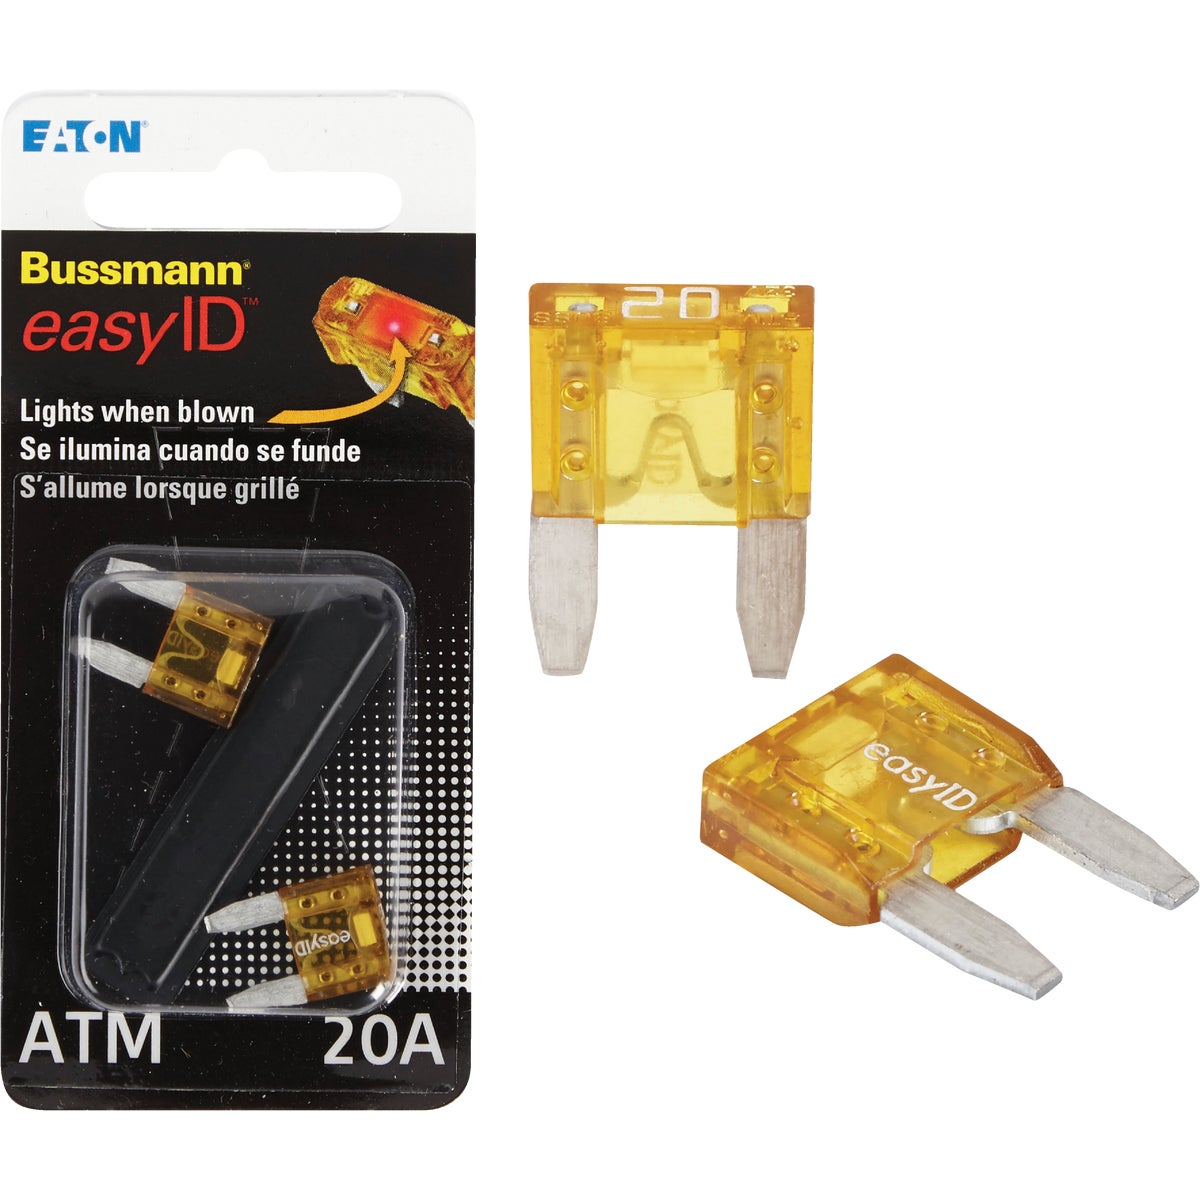 2PK 20A ATM EASY ID FUSE